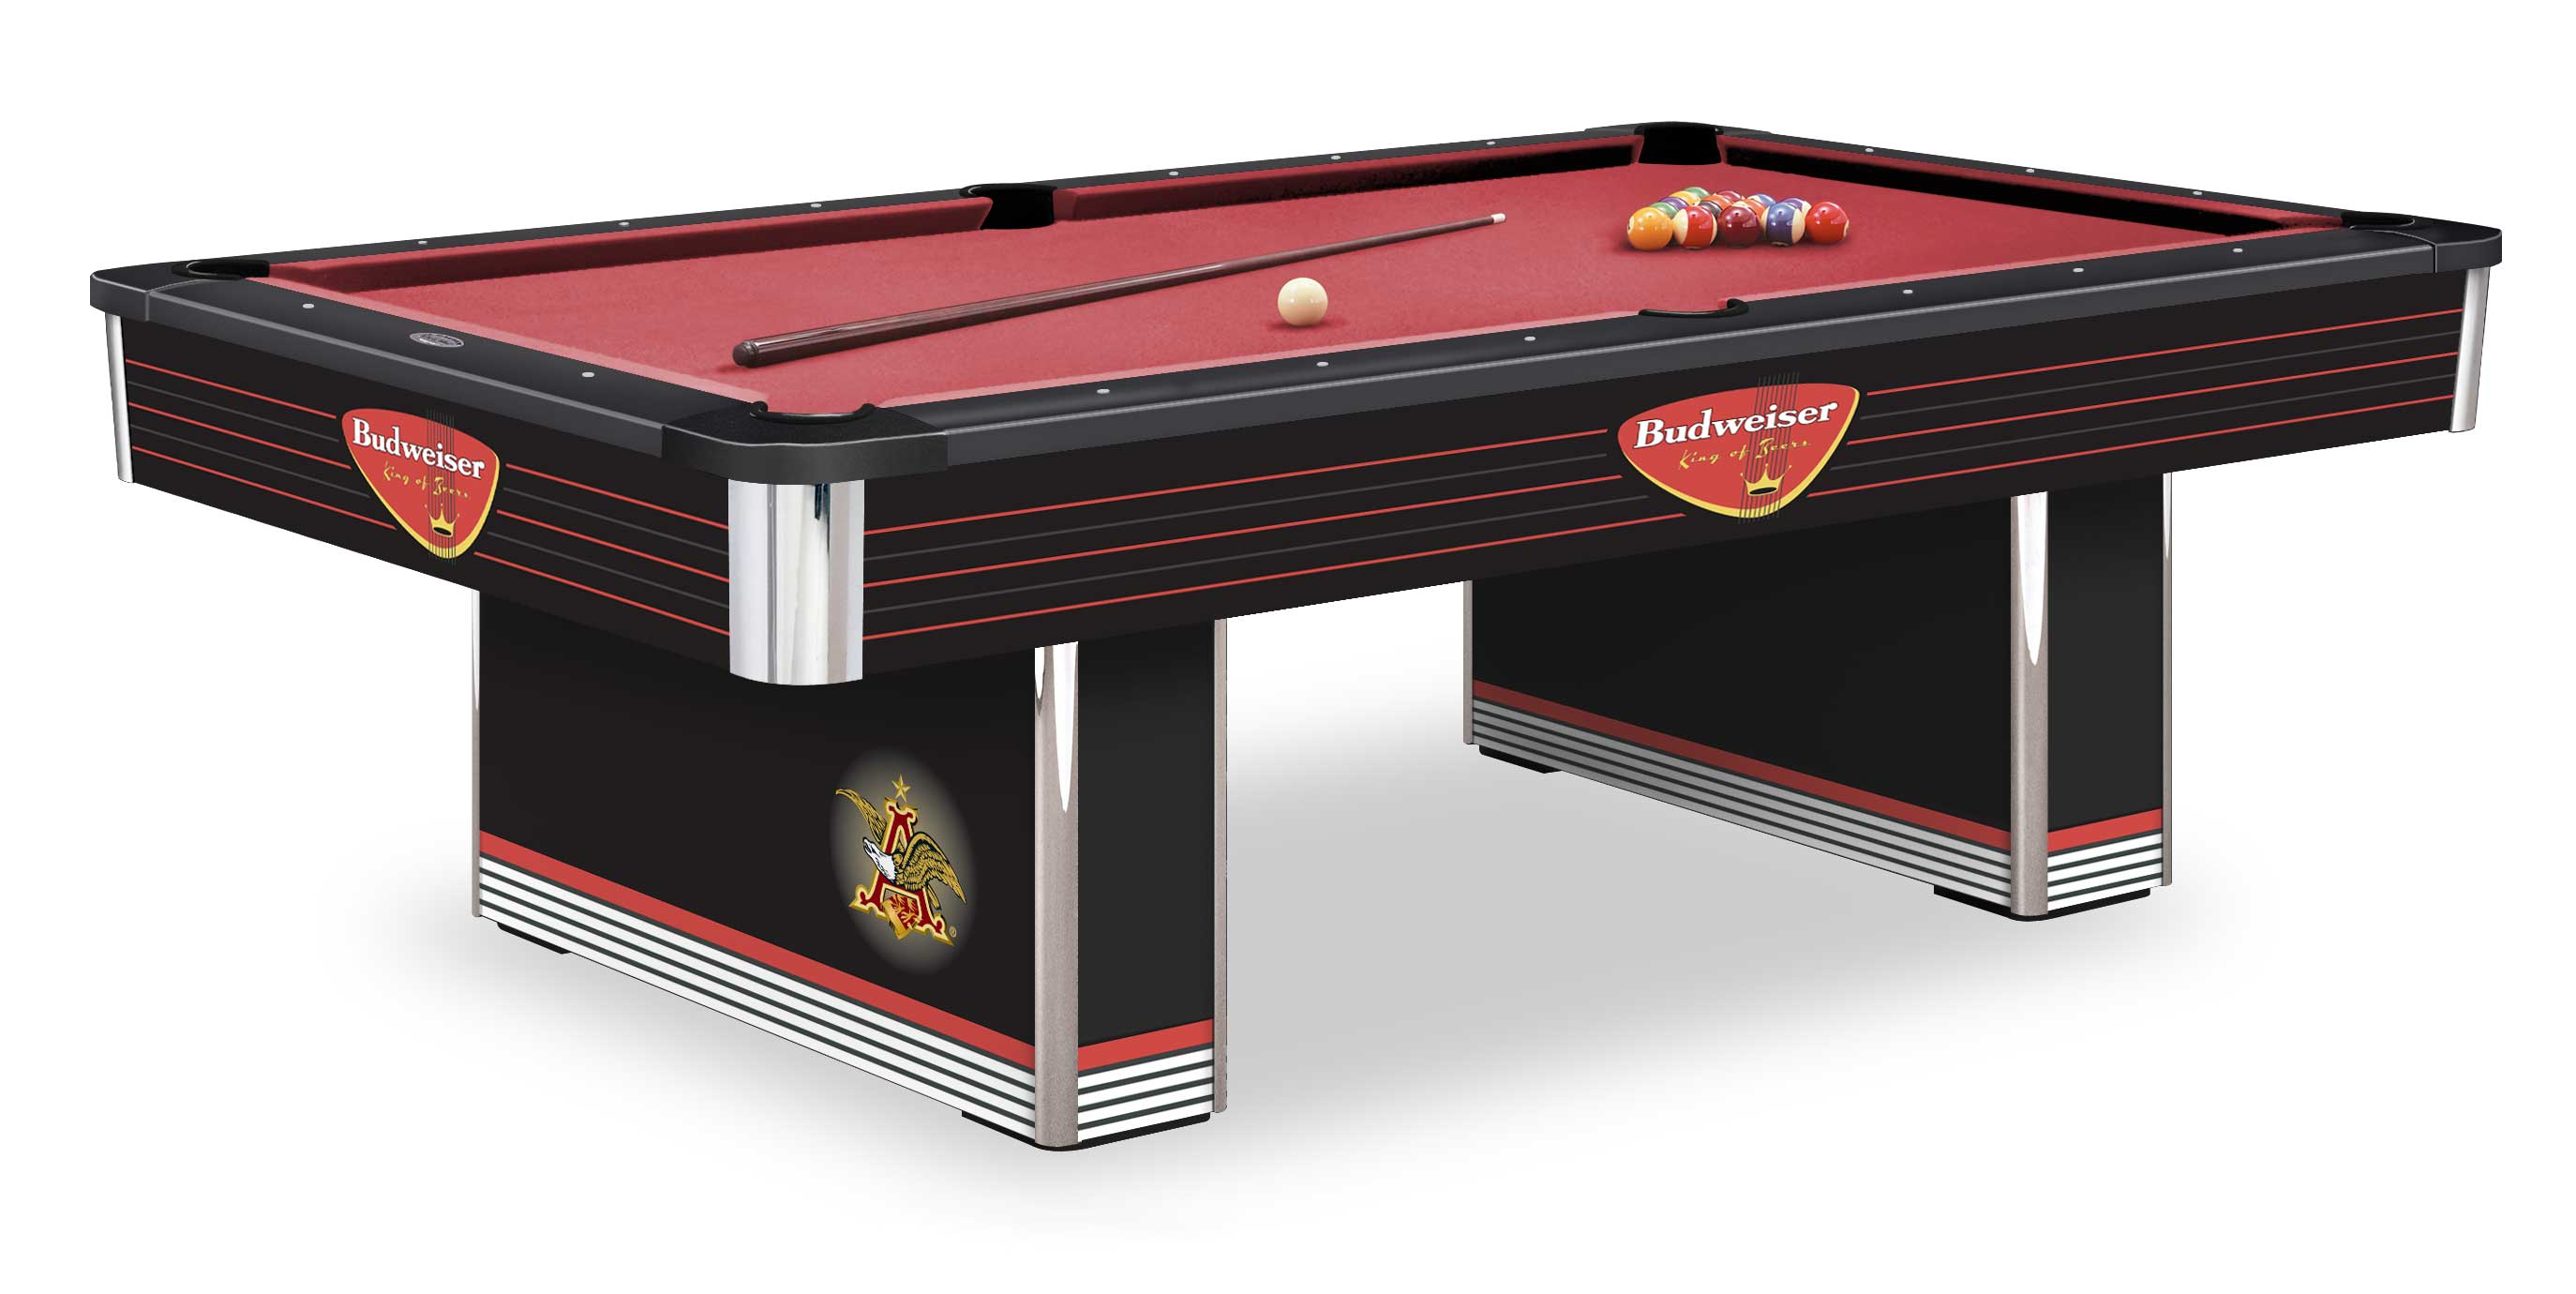 New Jersey Budweiser Pool Tables Budweiser Olhausen Billiards Pool - Retro pool table